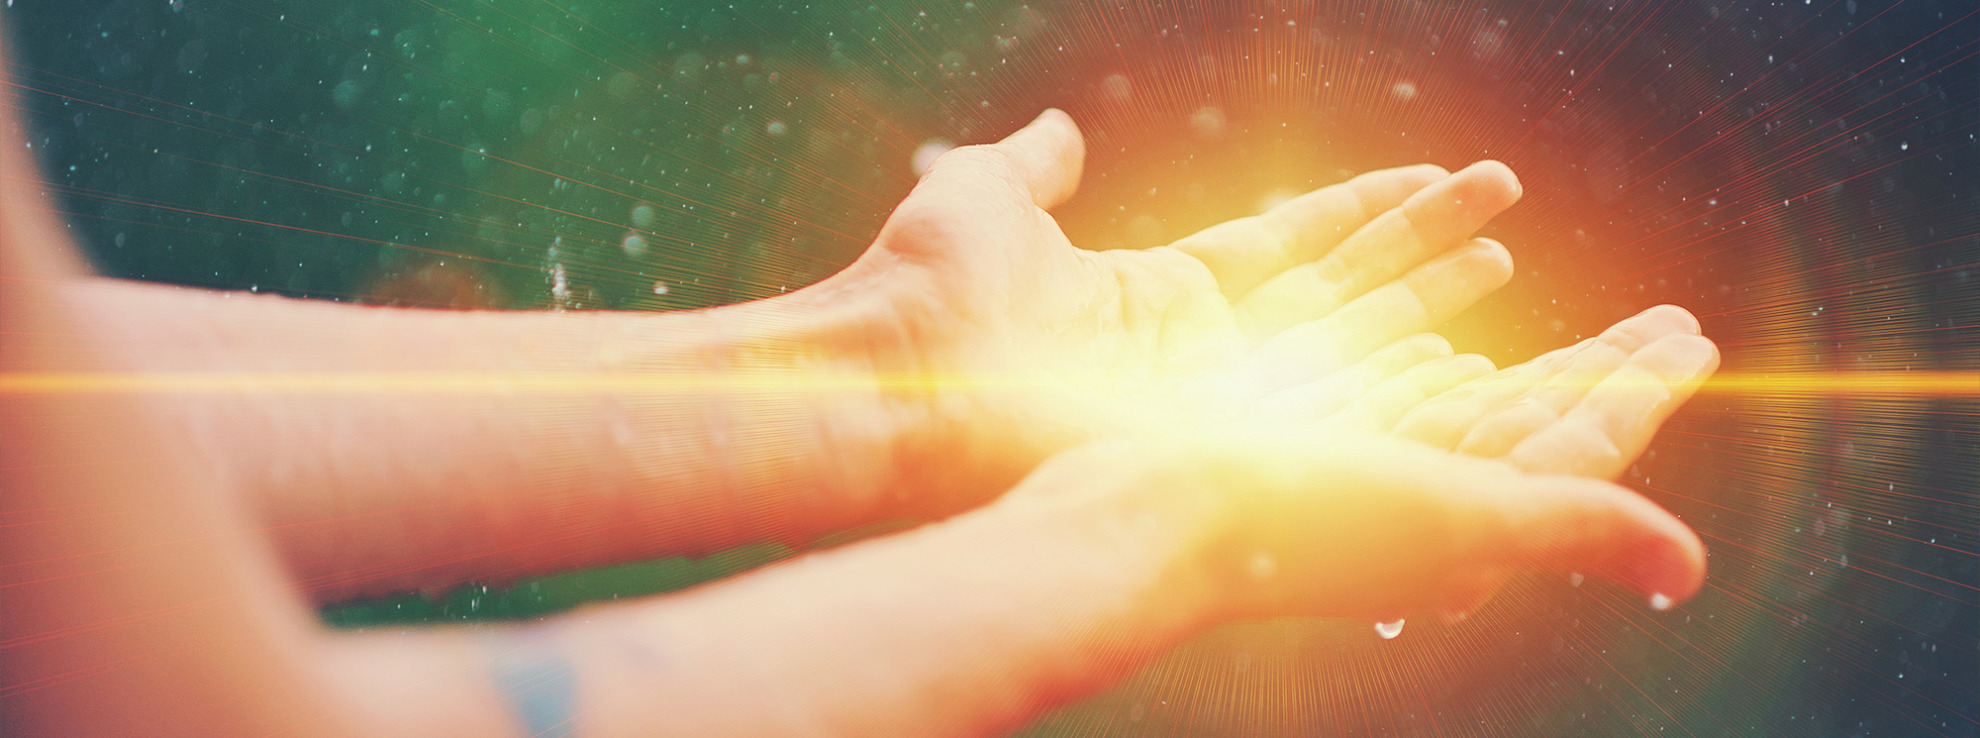 Healing Hands | Body Mind Wholeness